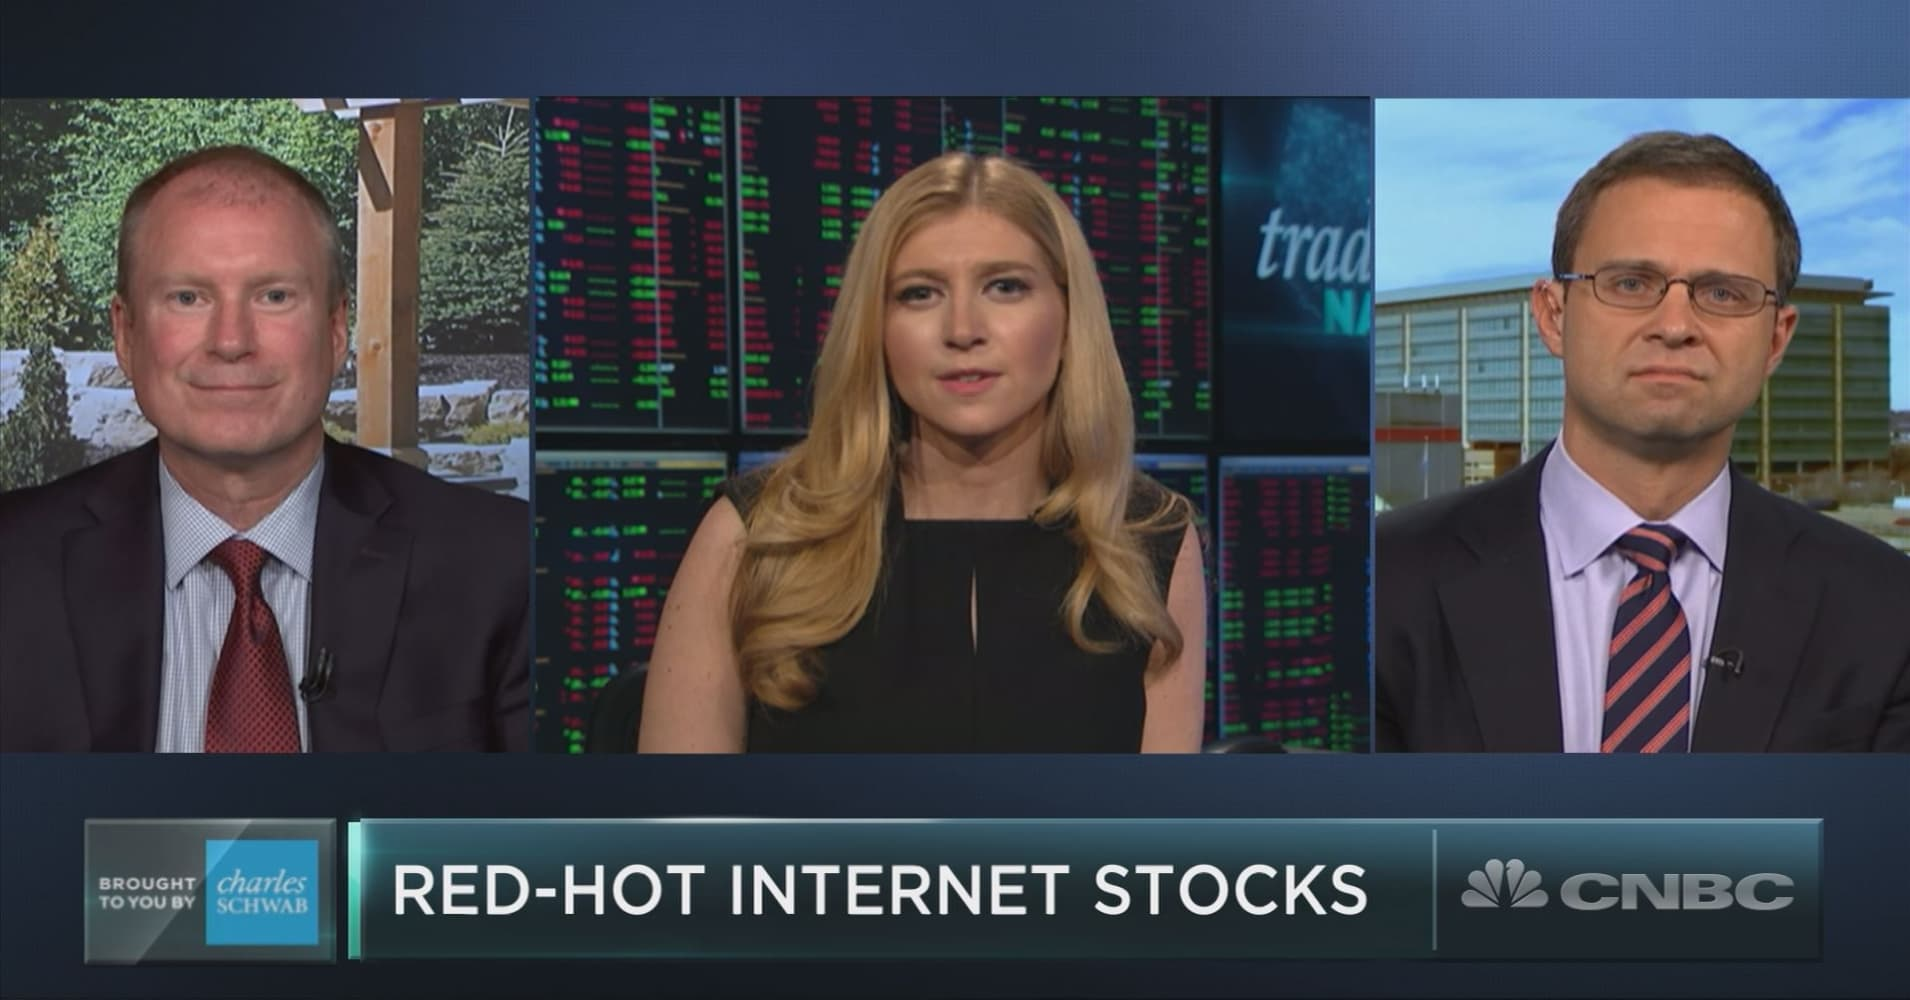 Web 2.0 trade: Red-hot internet stocks soaring, but rally could fade